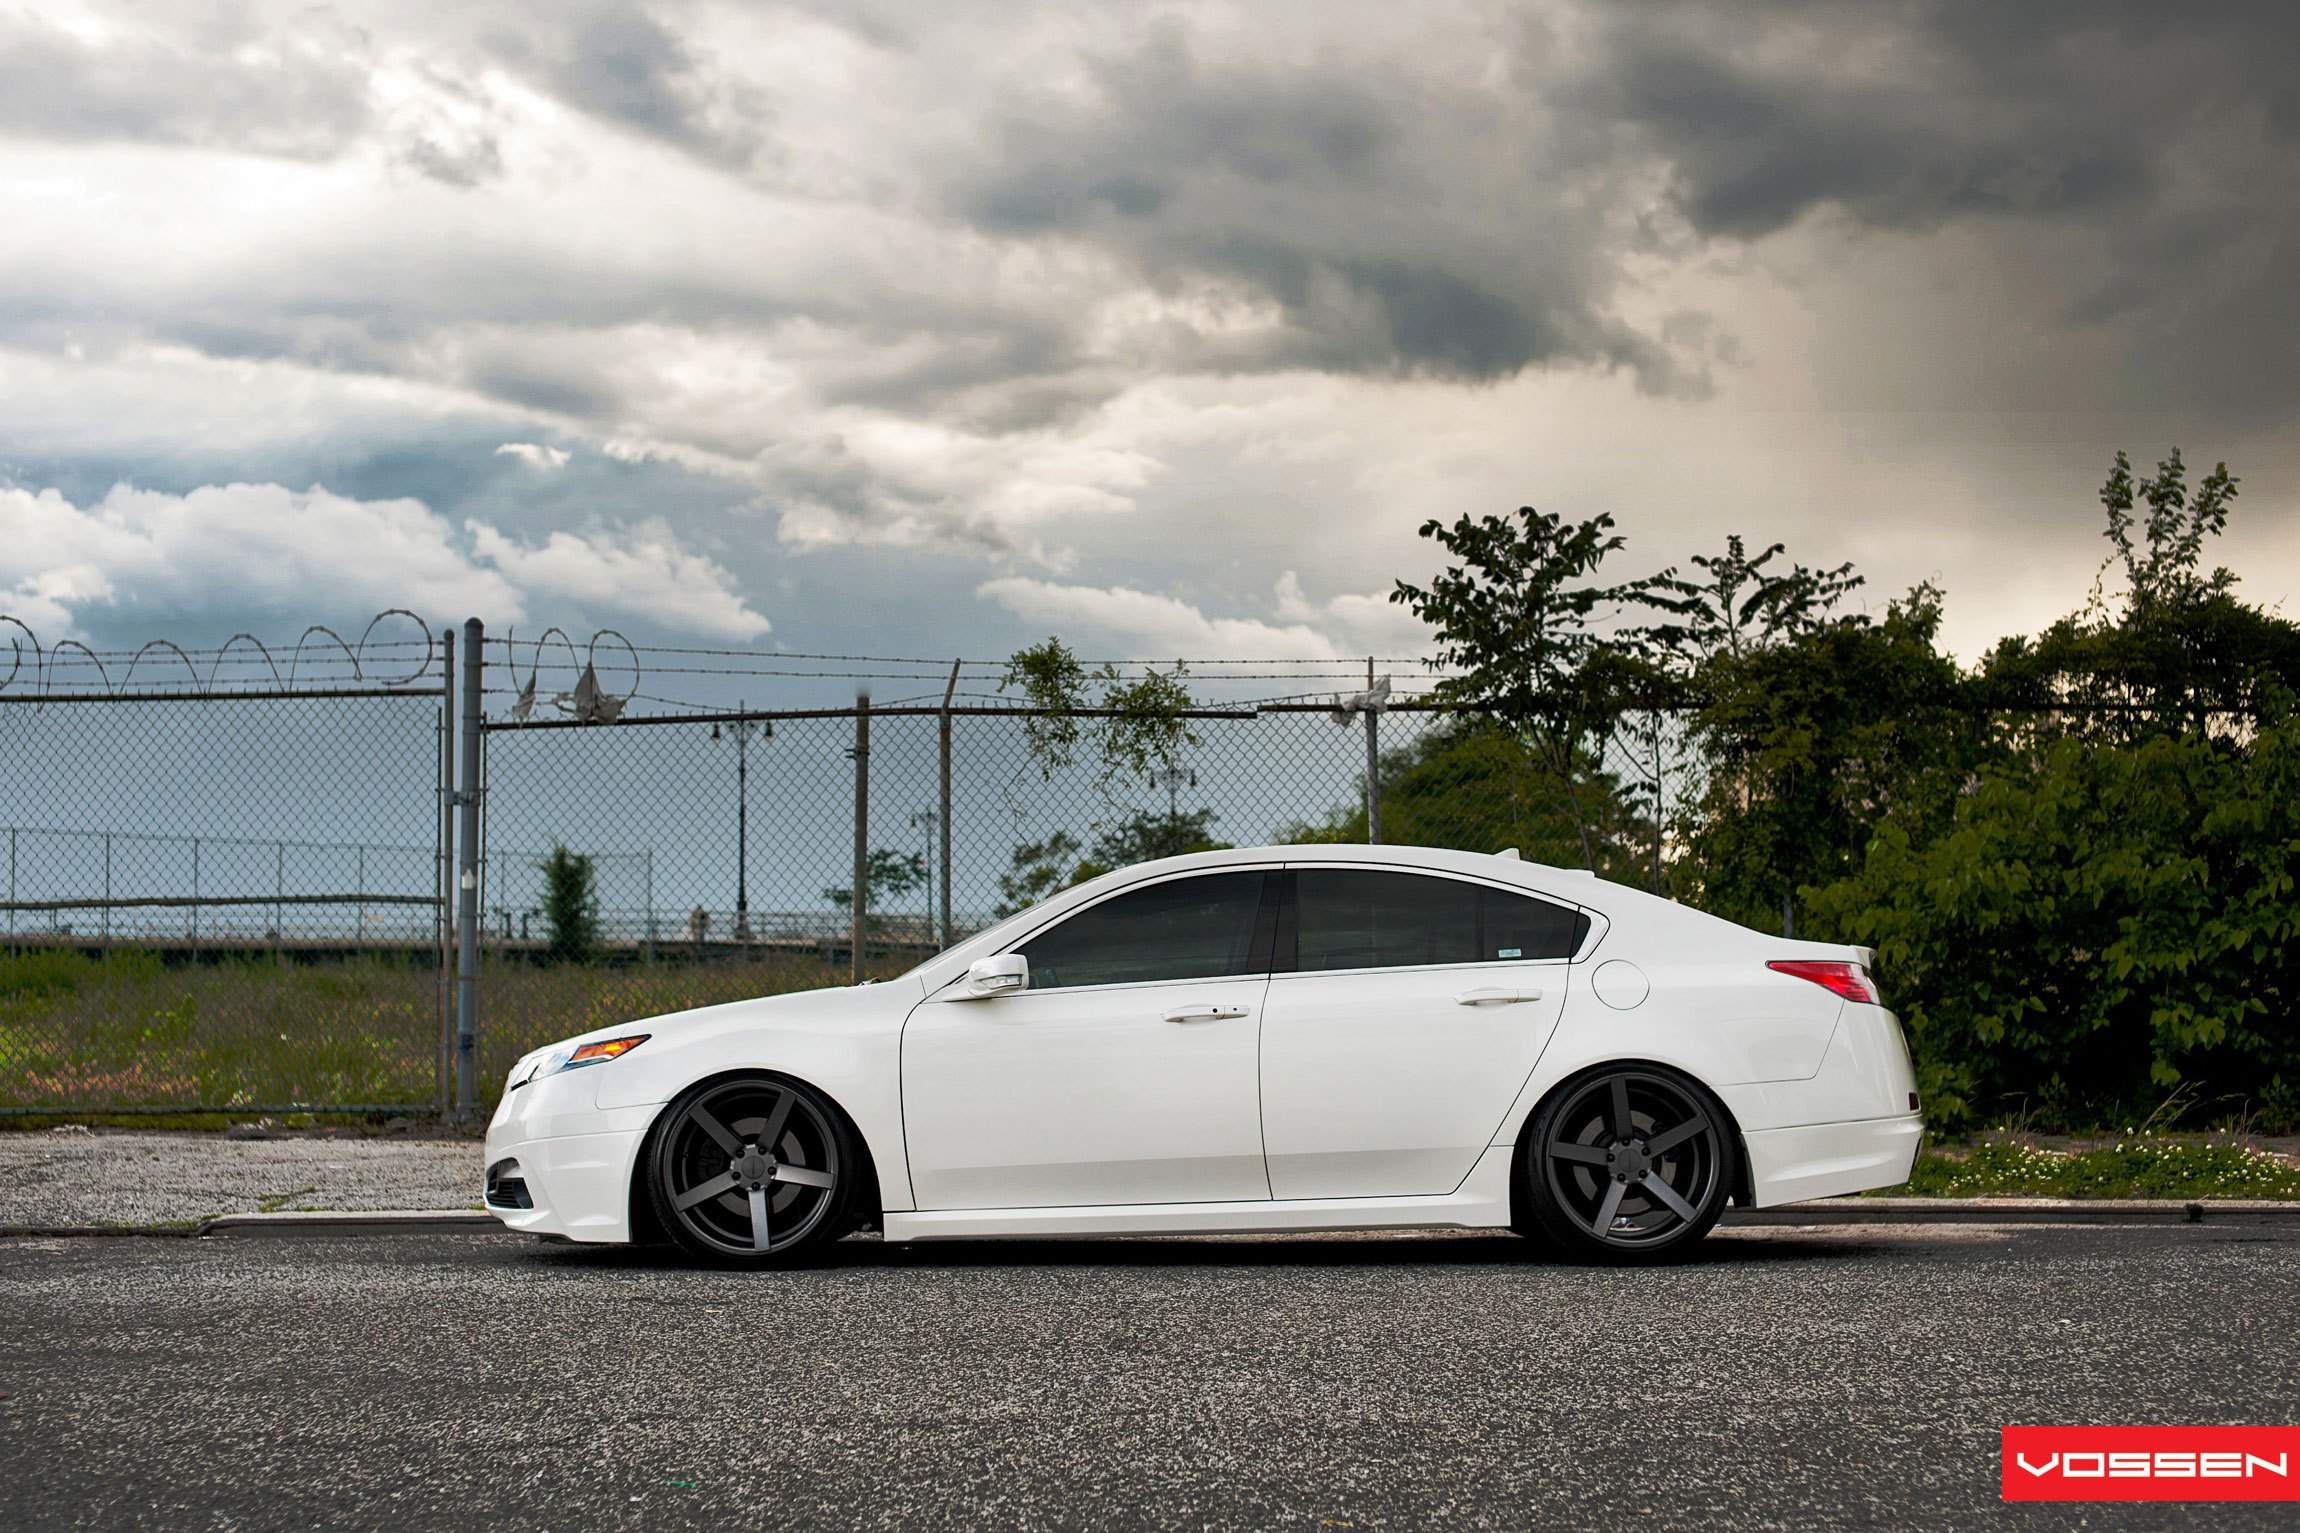 Lowered And Awesome Acura TL Rocking A Set Of Custom Rims CARiD - Acura tl black rims